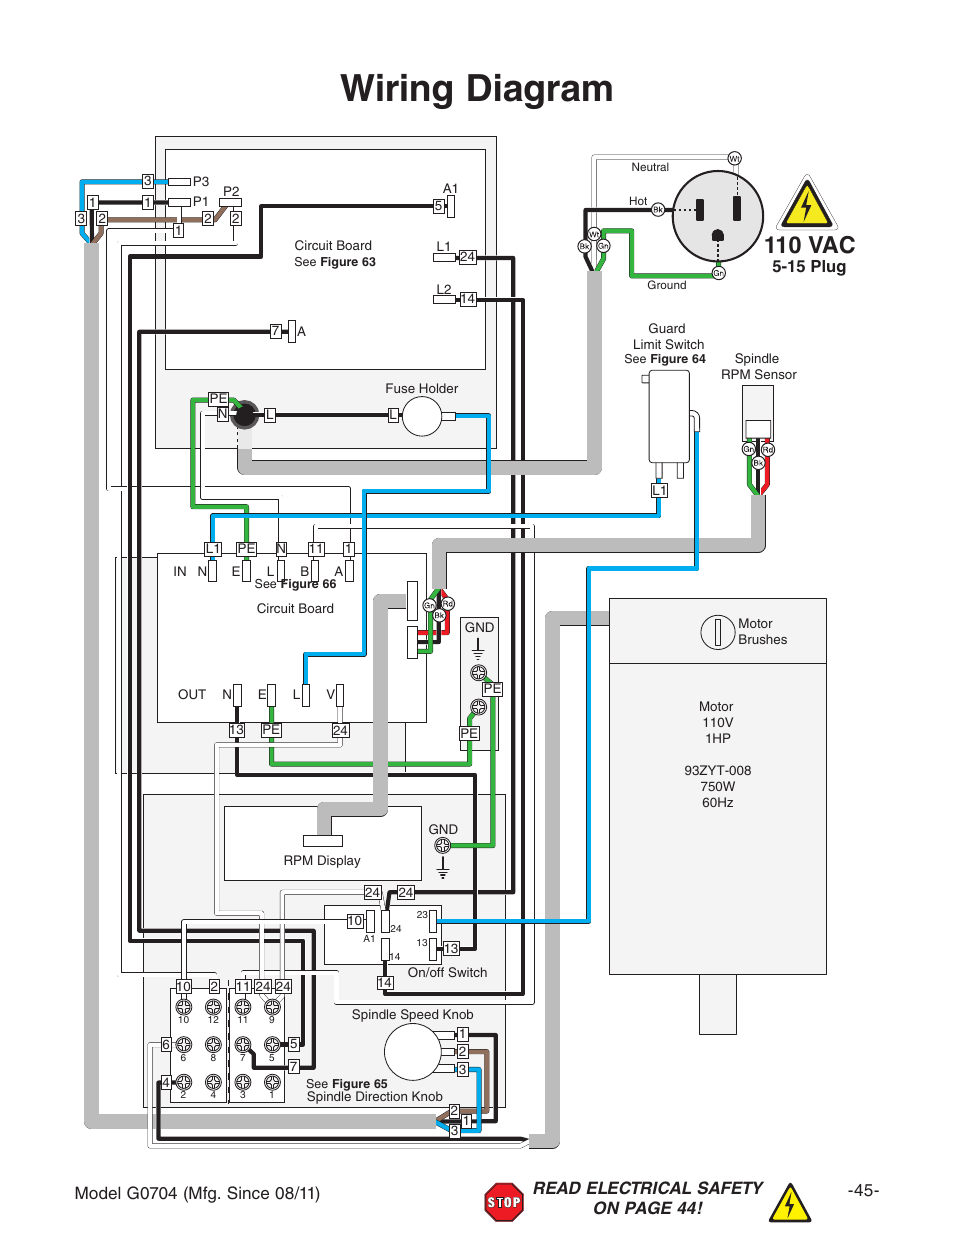 limit switch wiring diagram 12v push diagram, 110 vac | grizzly g0704 user manual page 47 / 60